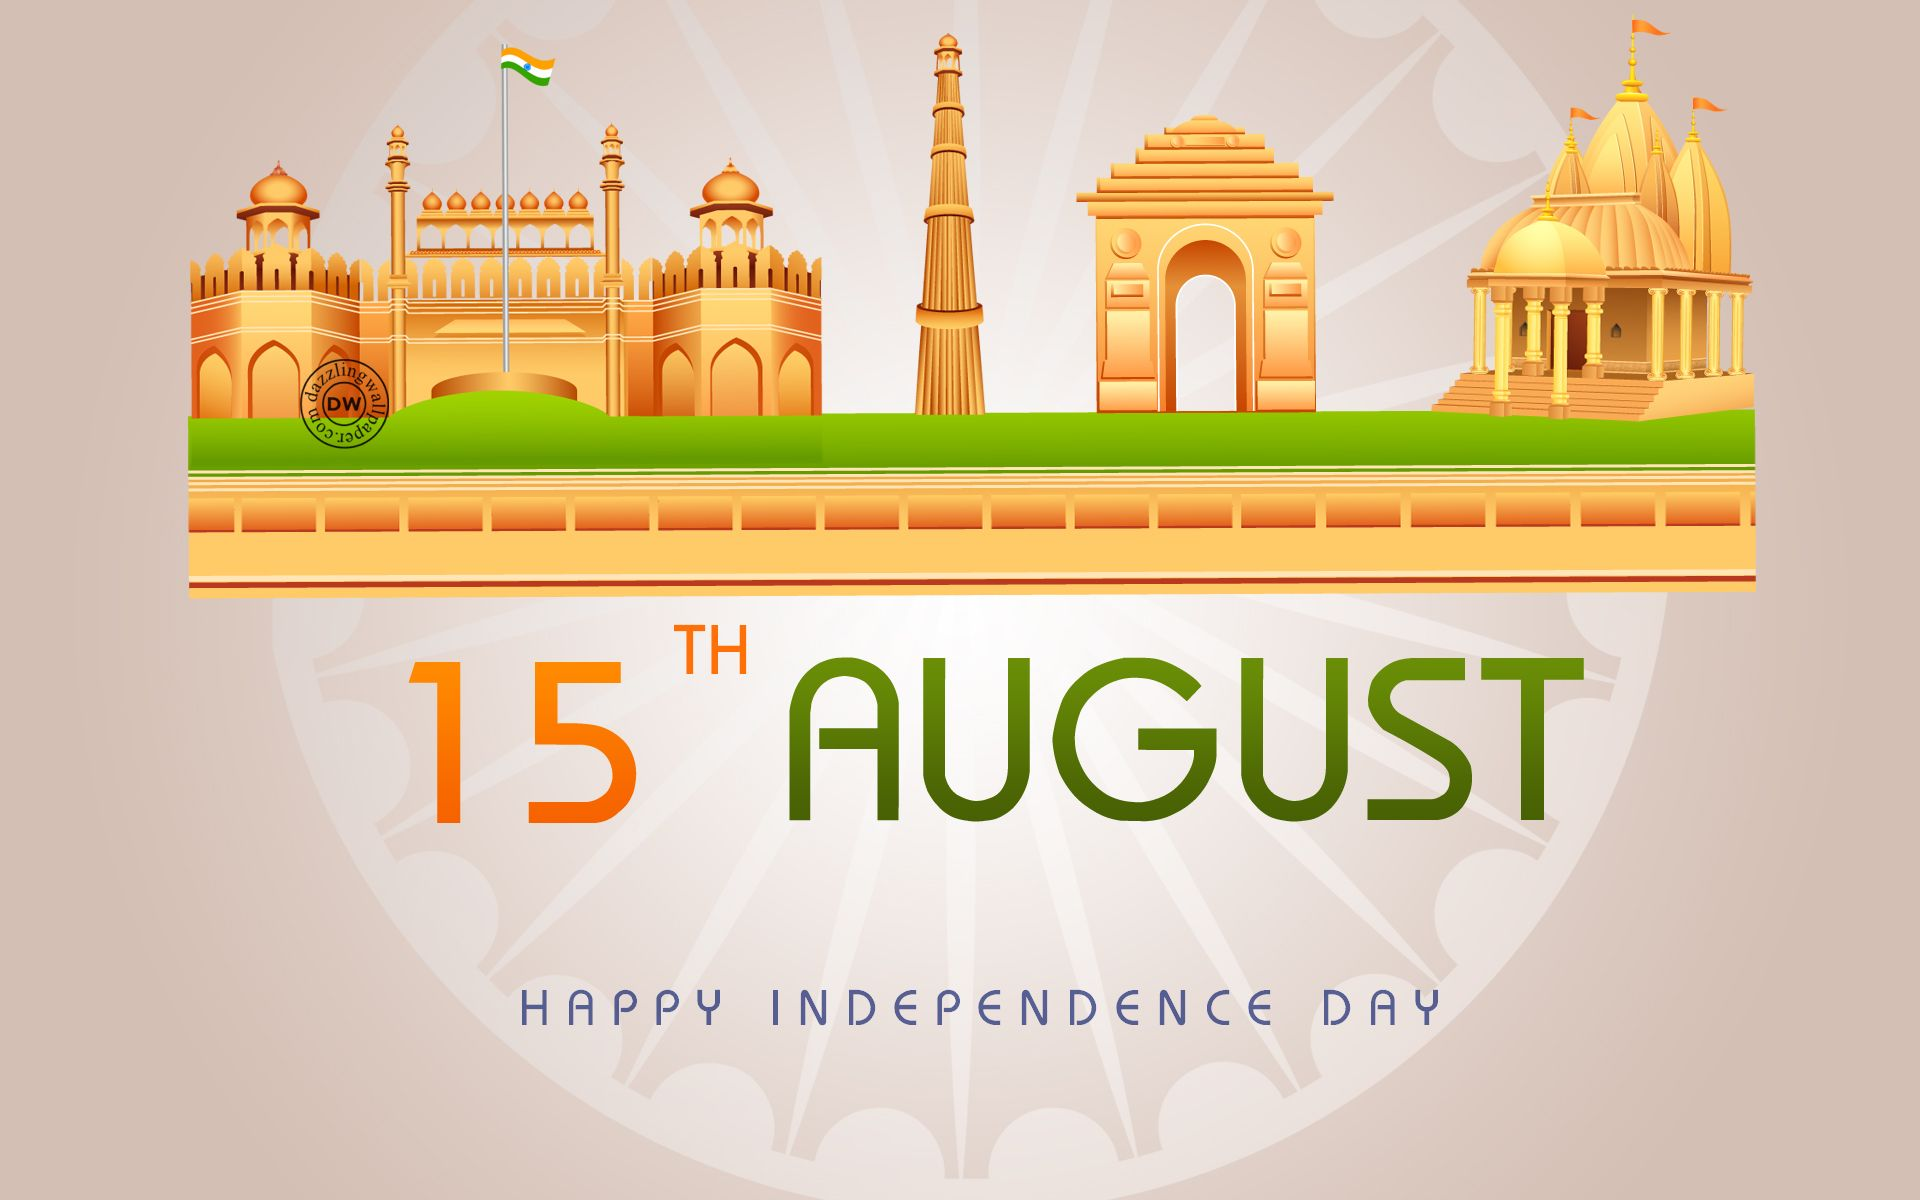 independence day hd independence day 15th independence day hd independence day 15th latest i love